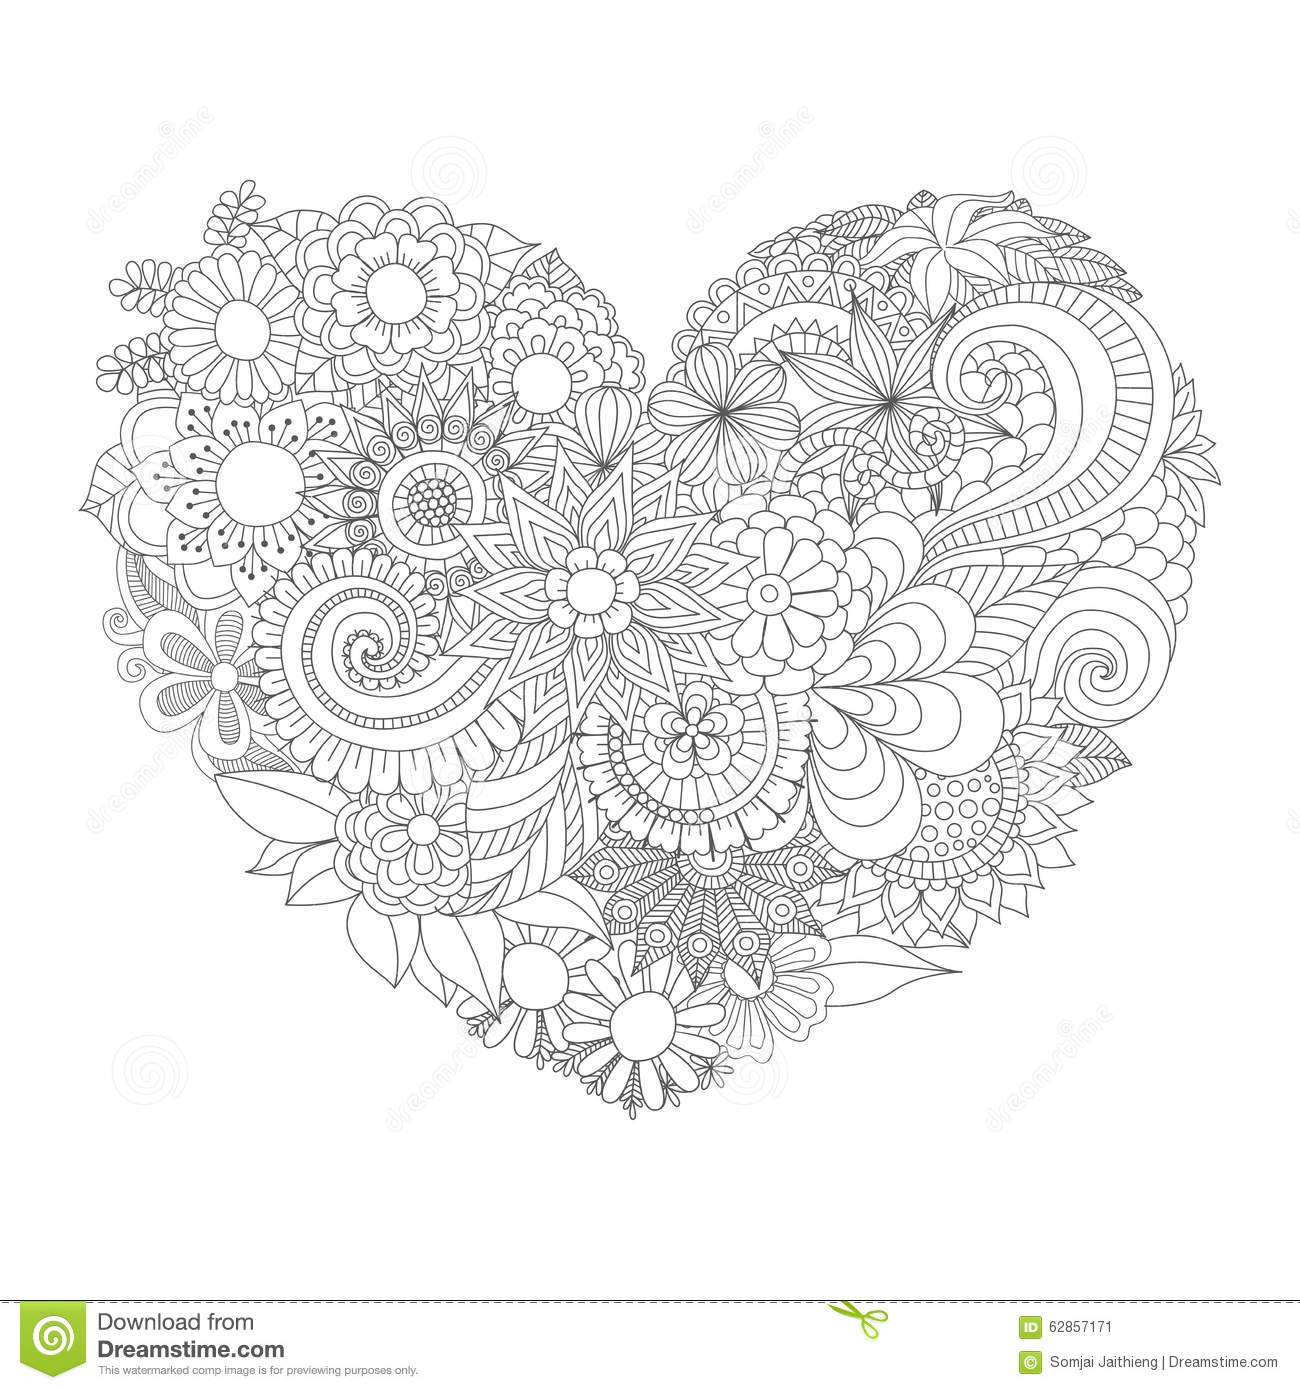 Online coloring hearts - Online Coloring Pages For Valentines Day